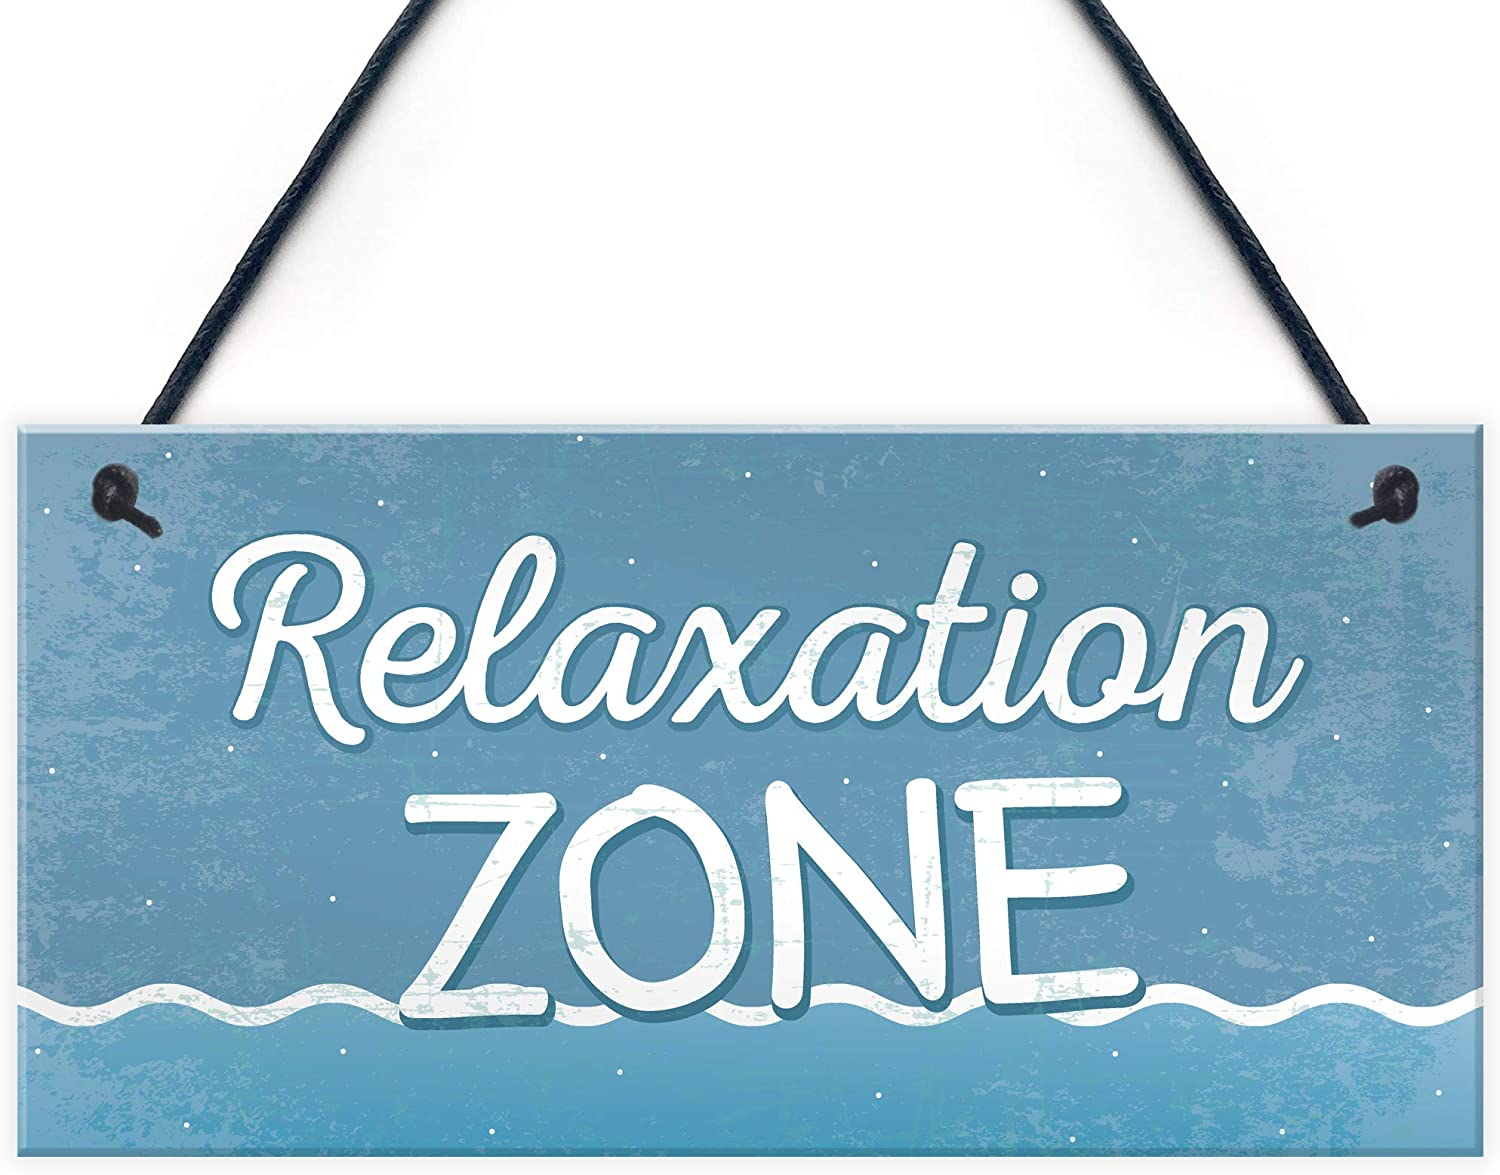 Relaxation Zone Hot Tub Man Cave Bathroom Garden Plaque Hanging Shed Chic Sign Home Decor